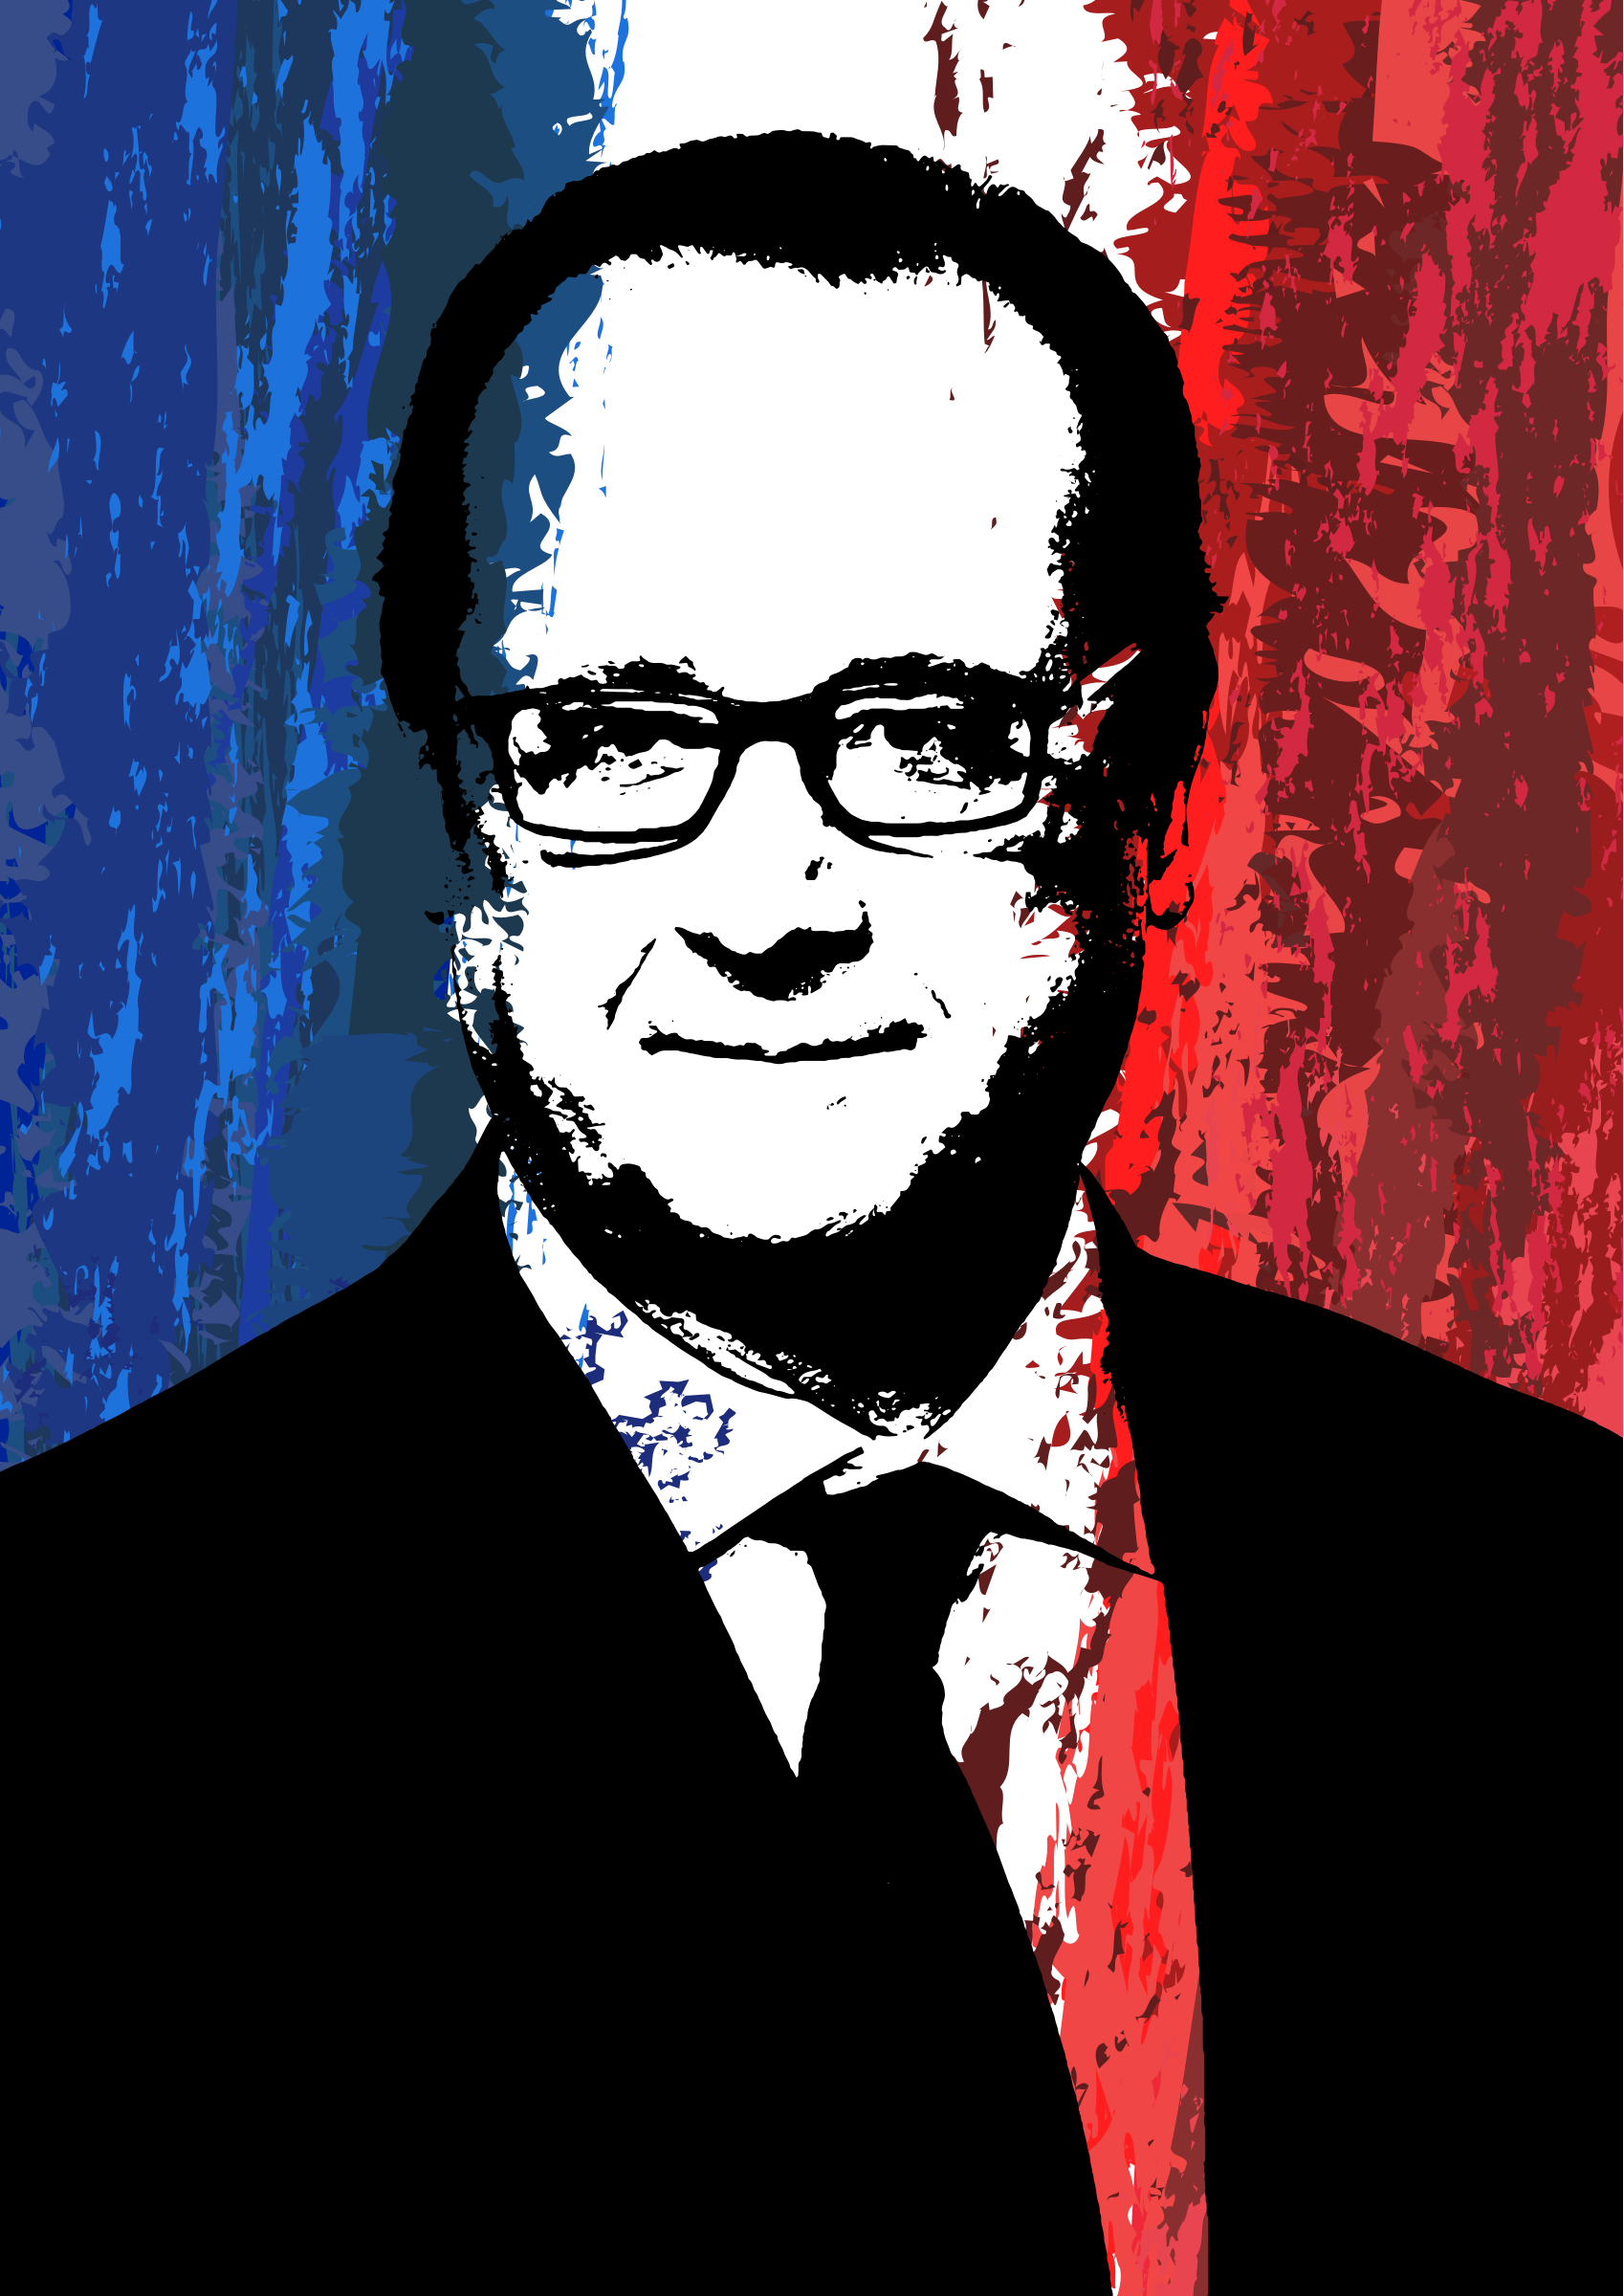 Portrait of François Hollande on a French Flag Background by GangandInfographie